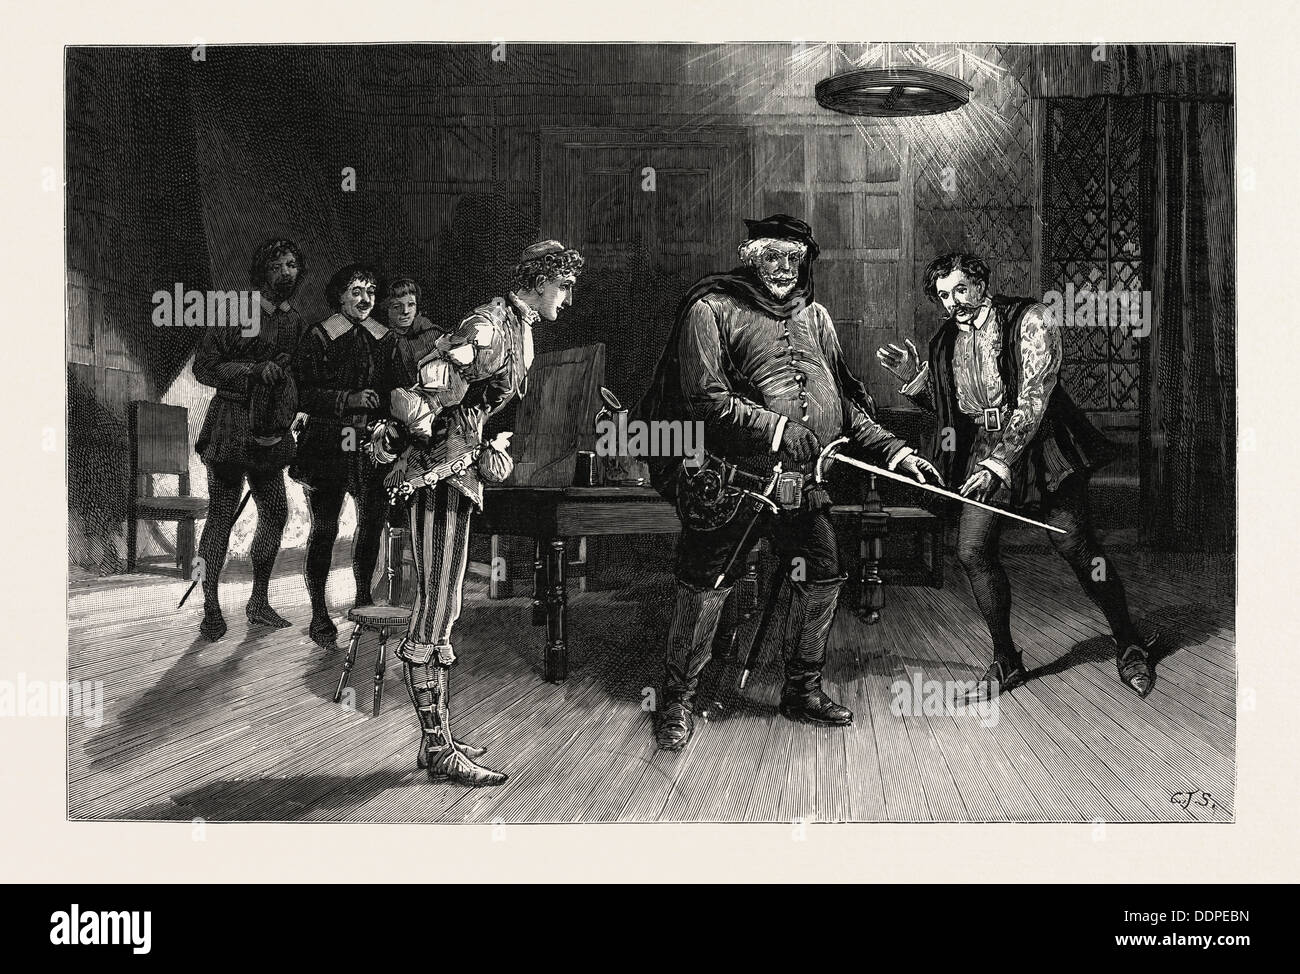 SCENE FROM THE PERFORMANCE OF HENRY IV., PART I., BY THE IRVING DRAMATIC CLUB AT THE LYCEUM THEATRE FALSTAFF - Stock Image